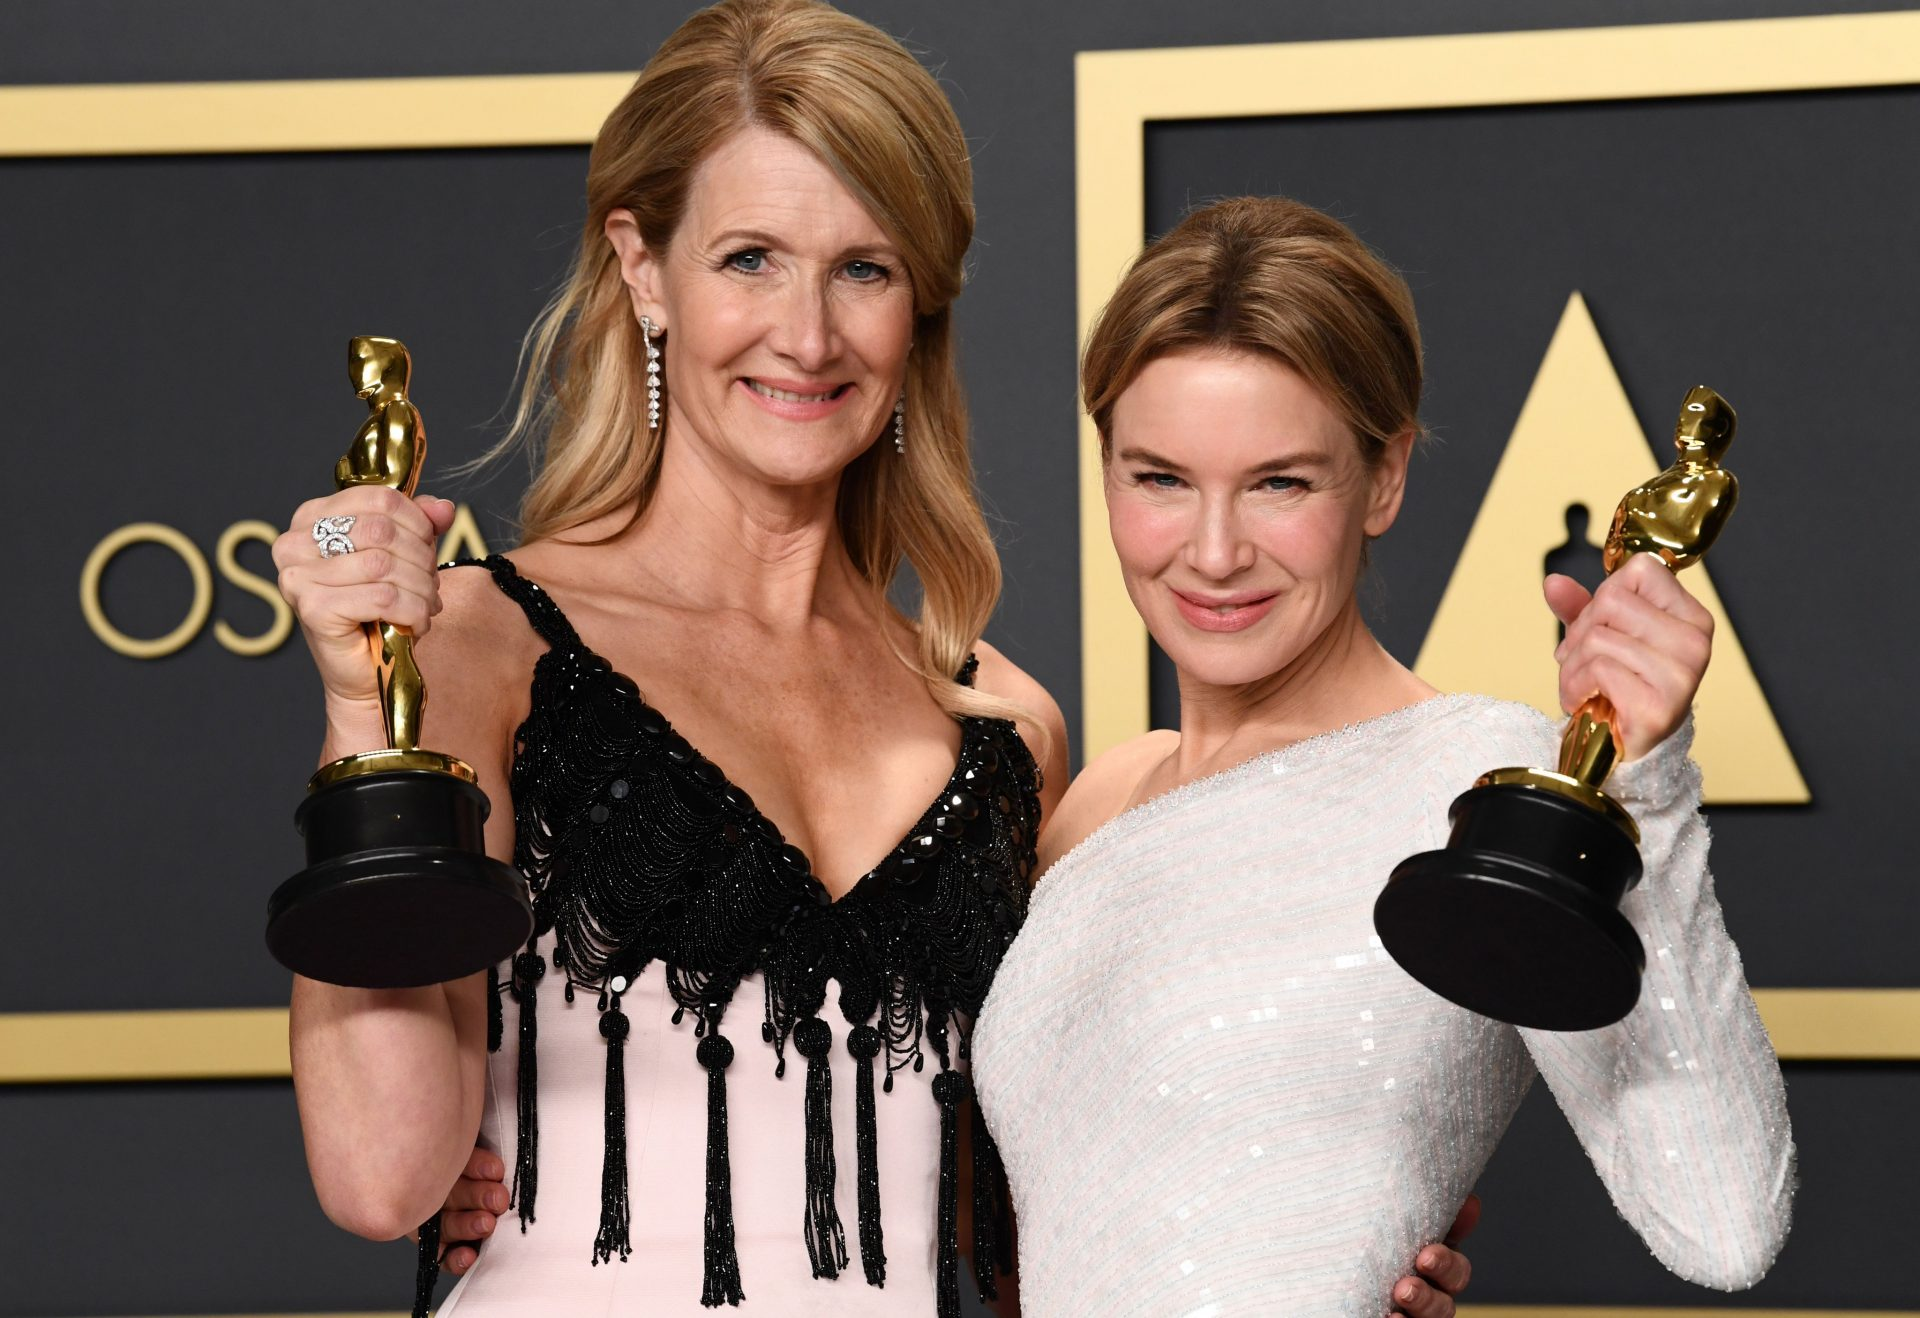 The Complete List of Oscars 2020 Winners 1 – Top Oscar  Jewelry 2020: A Night of Glitz and Glamour